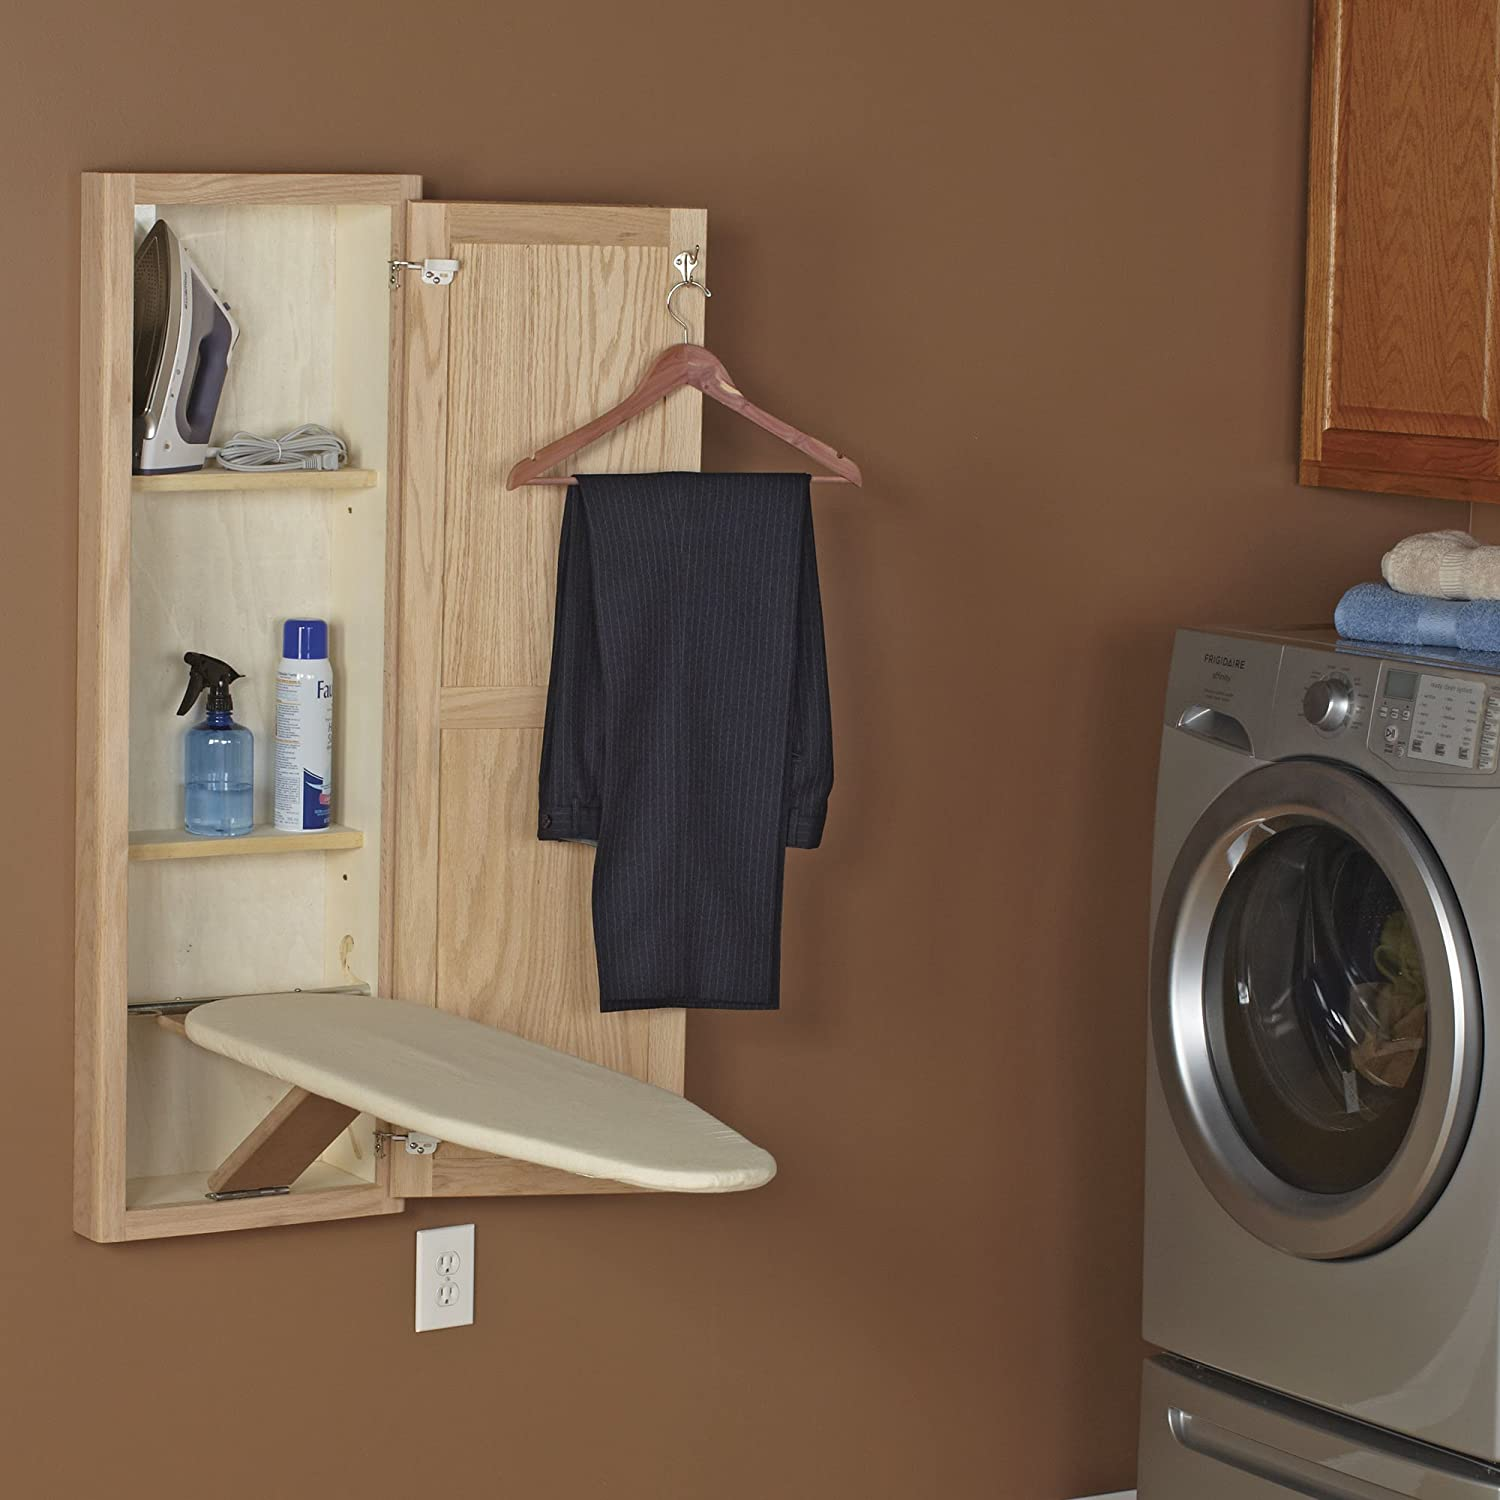 Unfinished Oak Household Essentials 18200-1 STOW AWAY In-Wall Ironing Board Cabinet with Built In Ironing Board